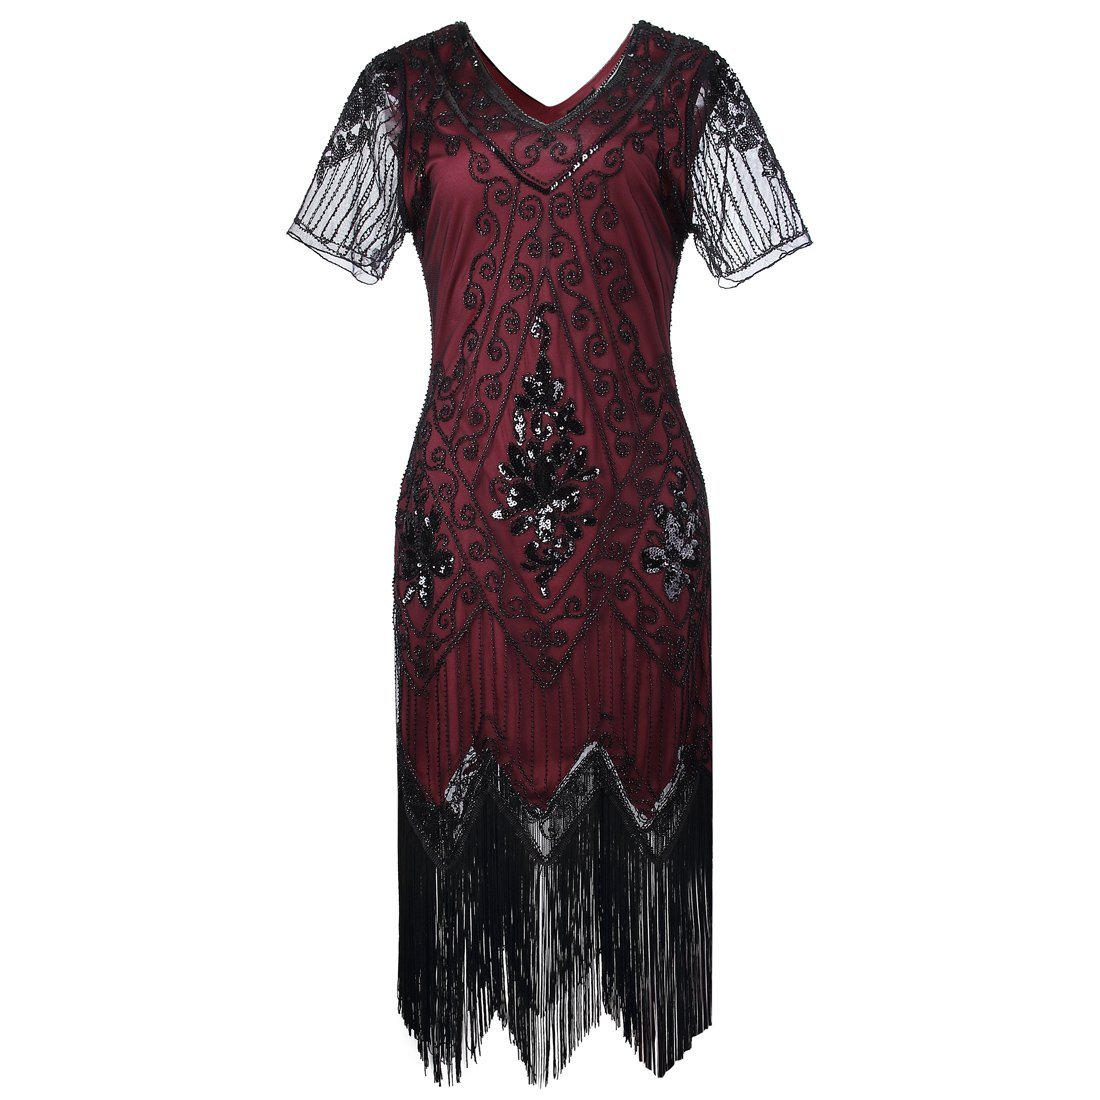 Classic 1920s Style Dress 1920's Gatsby Vibe 20s Vintage Boho Wedding Wine Red